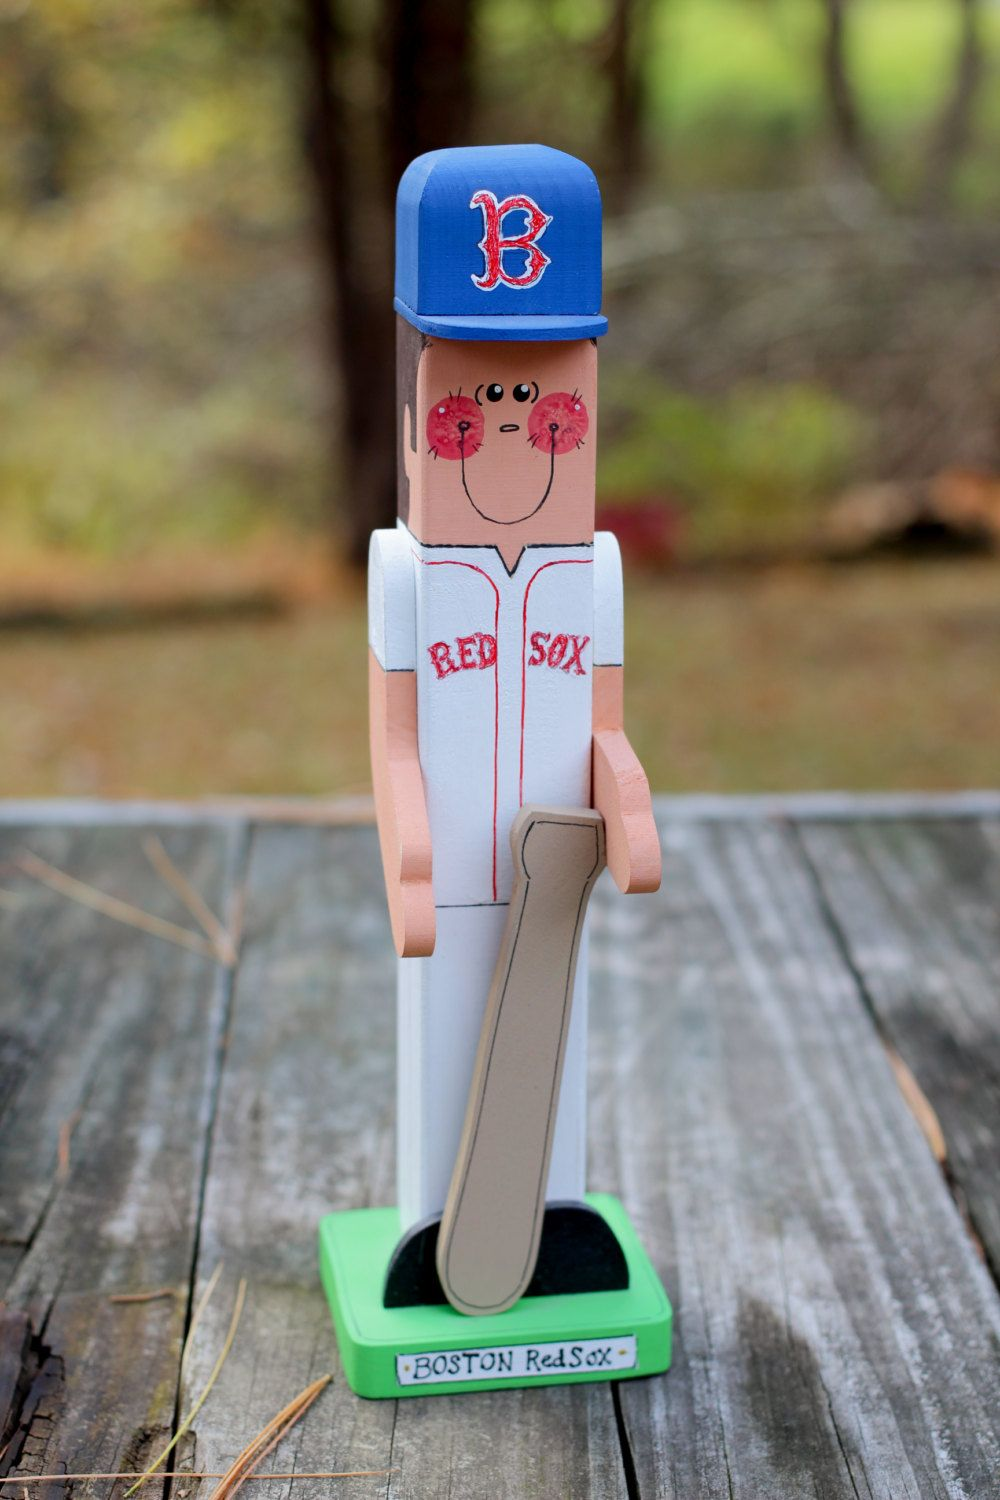 """Boston Red Sox 9"""" - Wooden Baseball Player - Handmade Wood Figure - Gift for Red Sox Fan by SawAndSewCrafts on Etsy"""